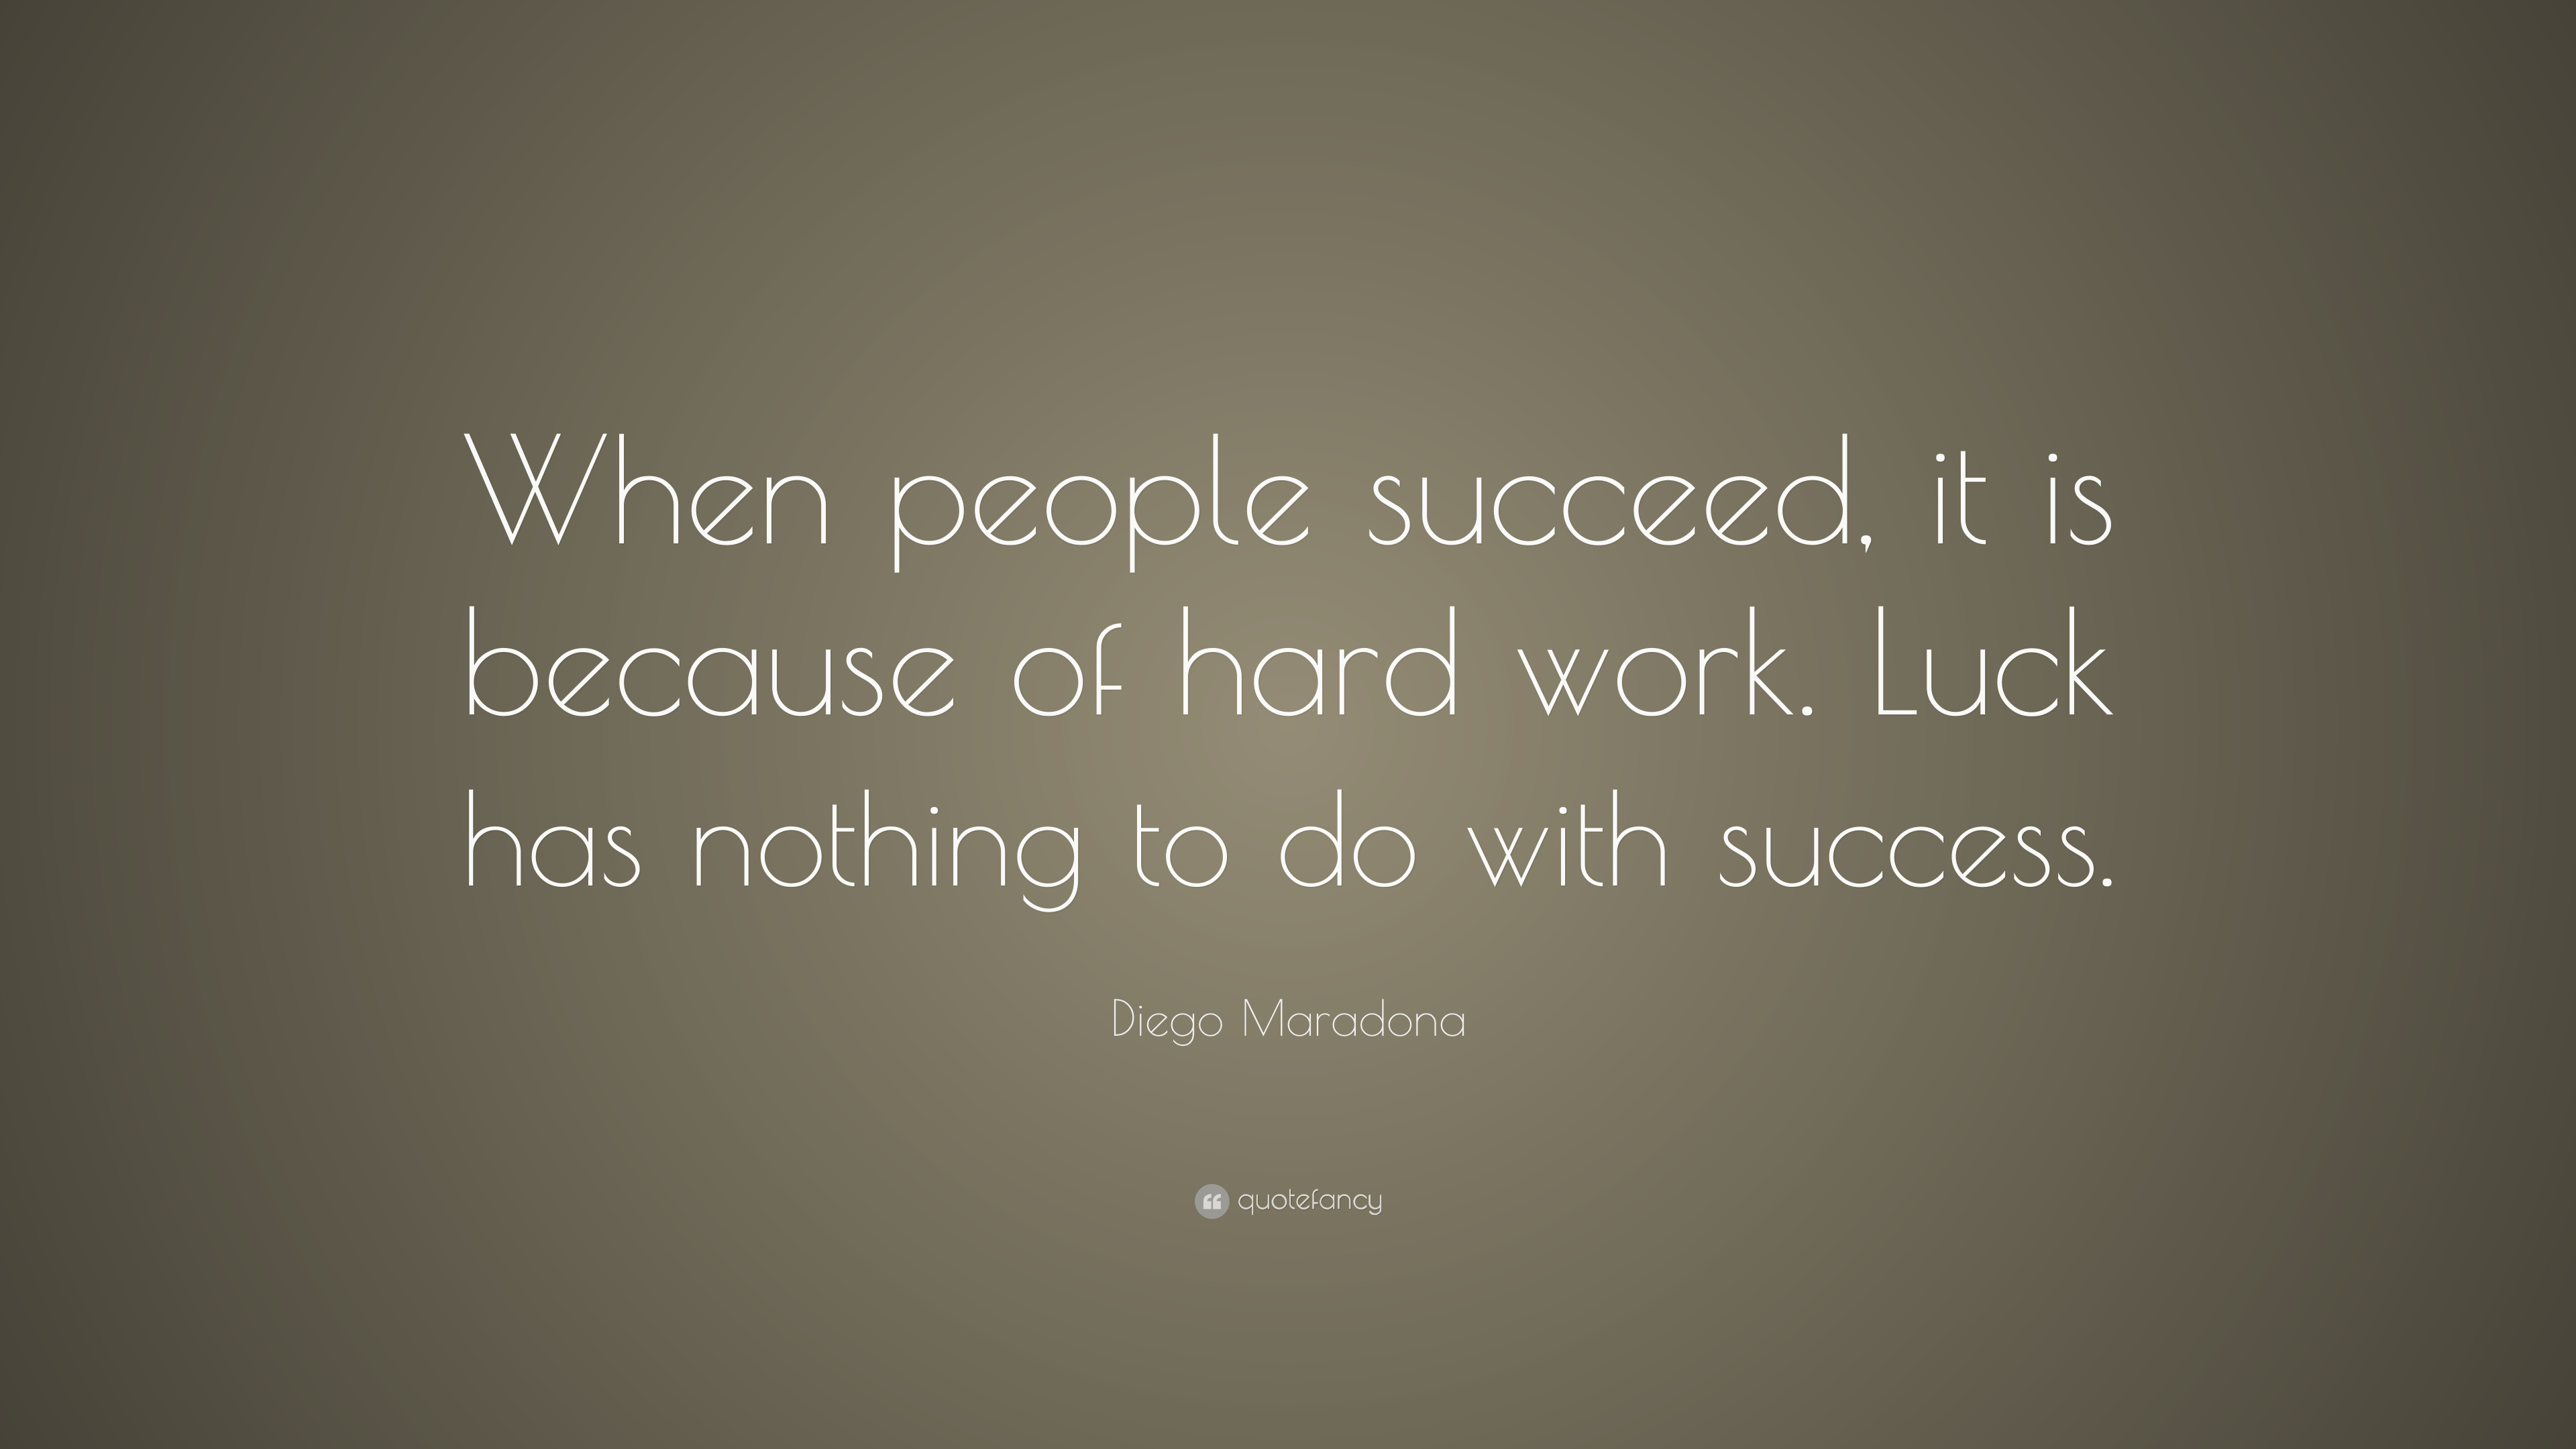 when people succeed it is because of hard work